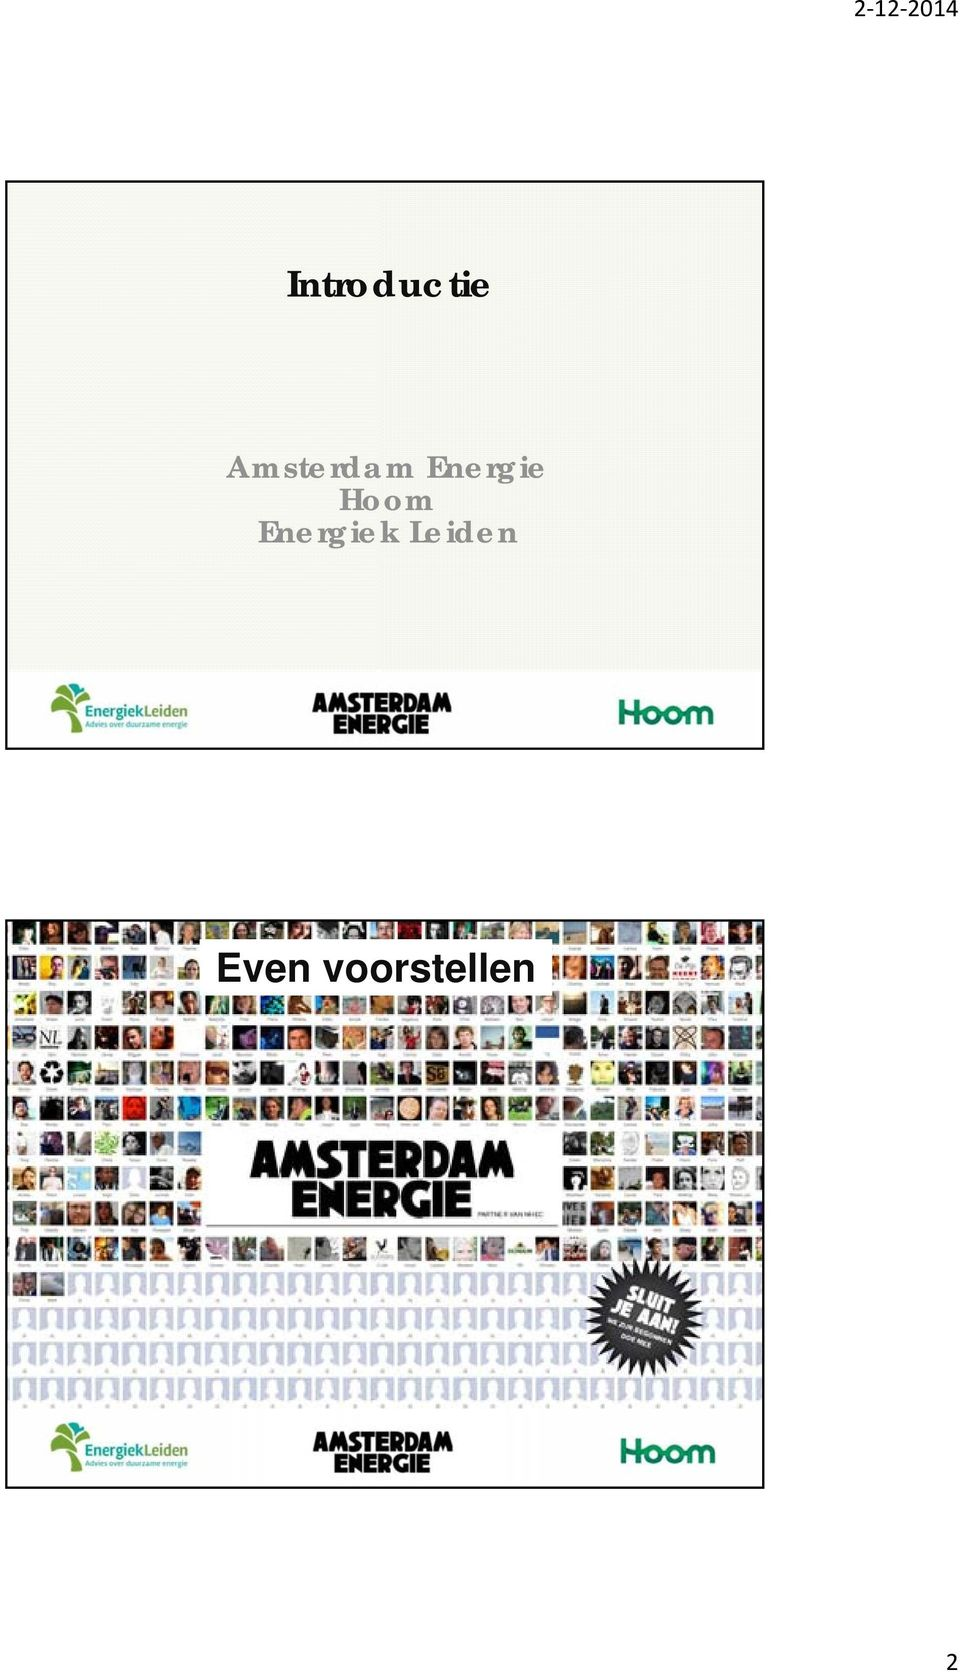 energiebesparing o Concept Amsterdam Energie & Hoom - Rolf o Verdienmodel Amsterdam Energie & Hoom Renske